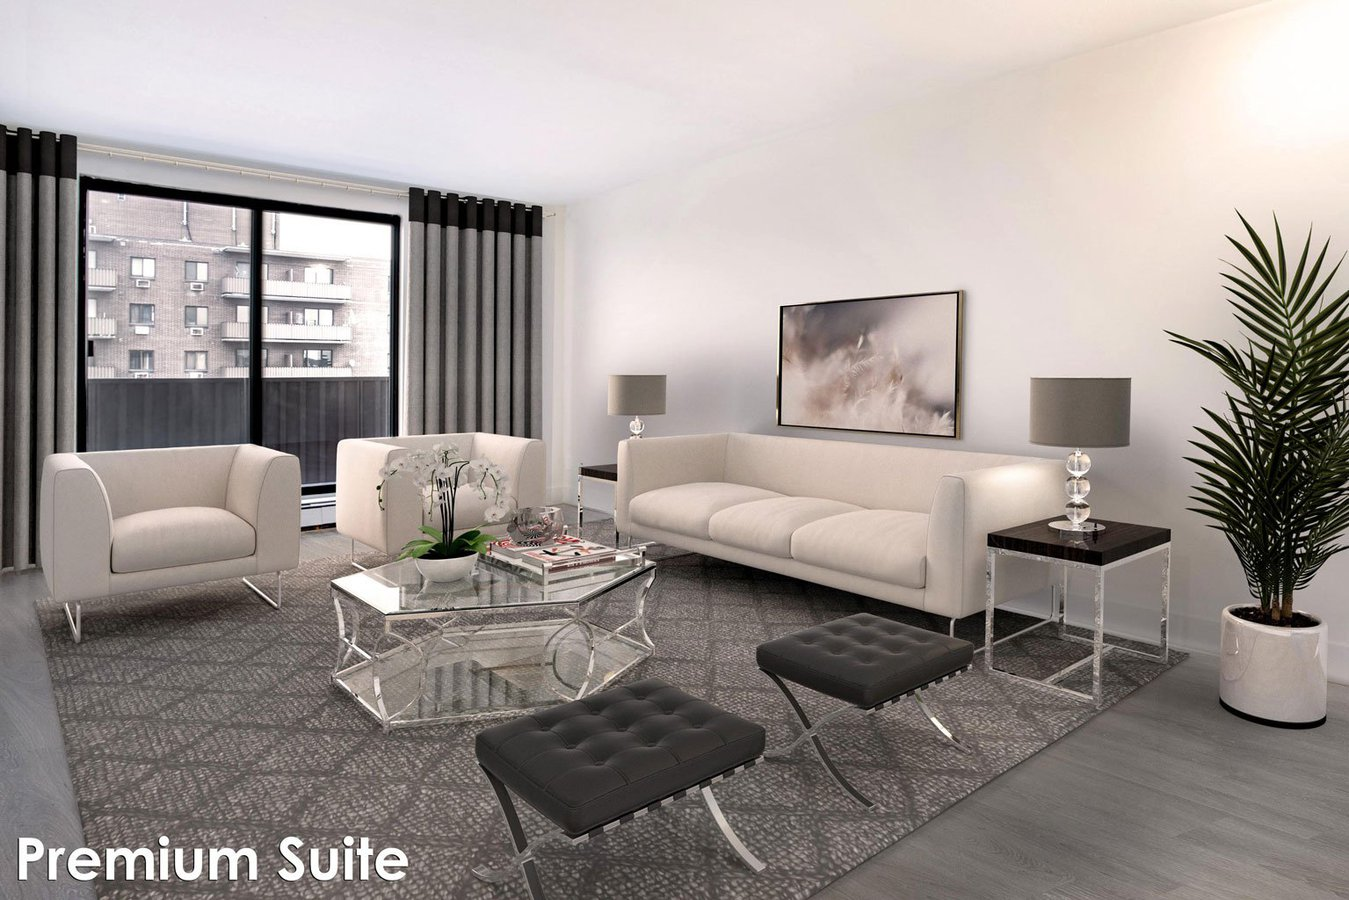 Fabulous Rentals Ca London Apartments Condos And Houses For Rent Download Free Architecture Designs Viewormadebymaigaardcom